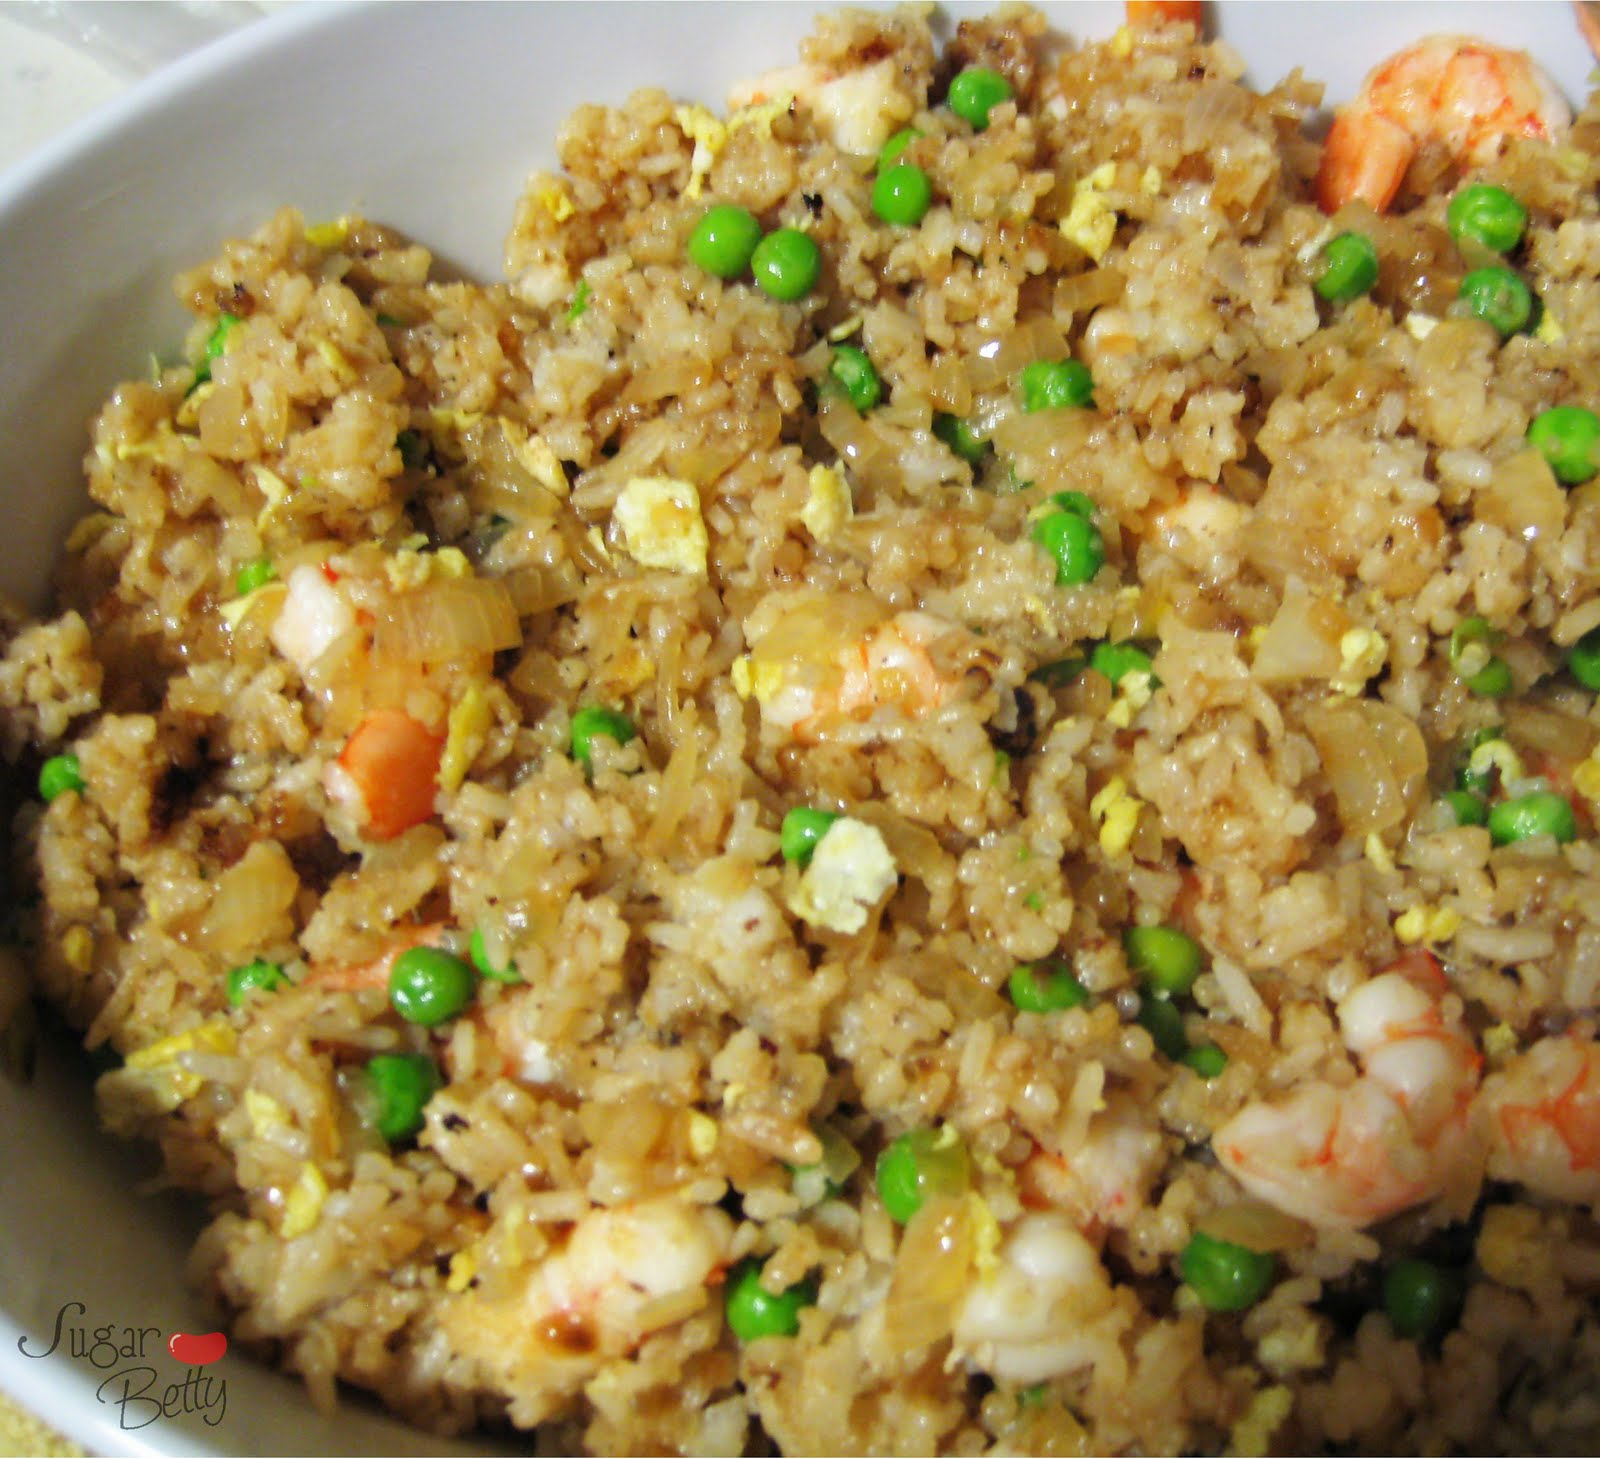 ... official special fried rice disease shrimp fried rice disease images